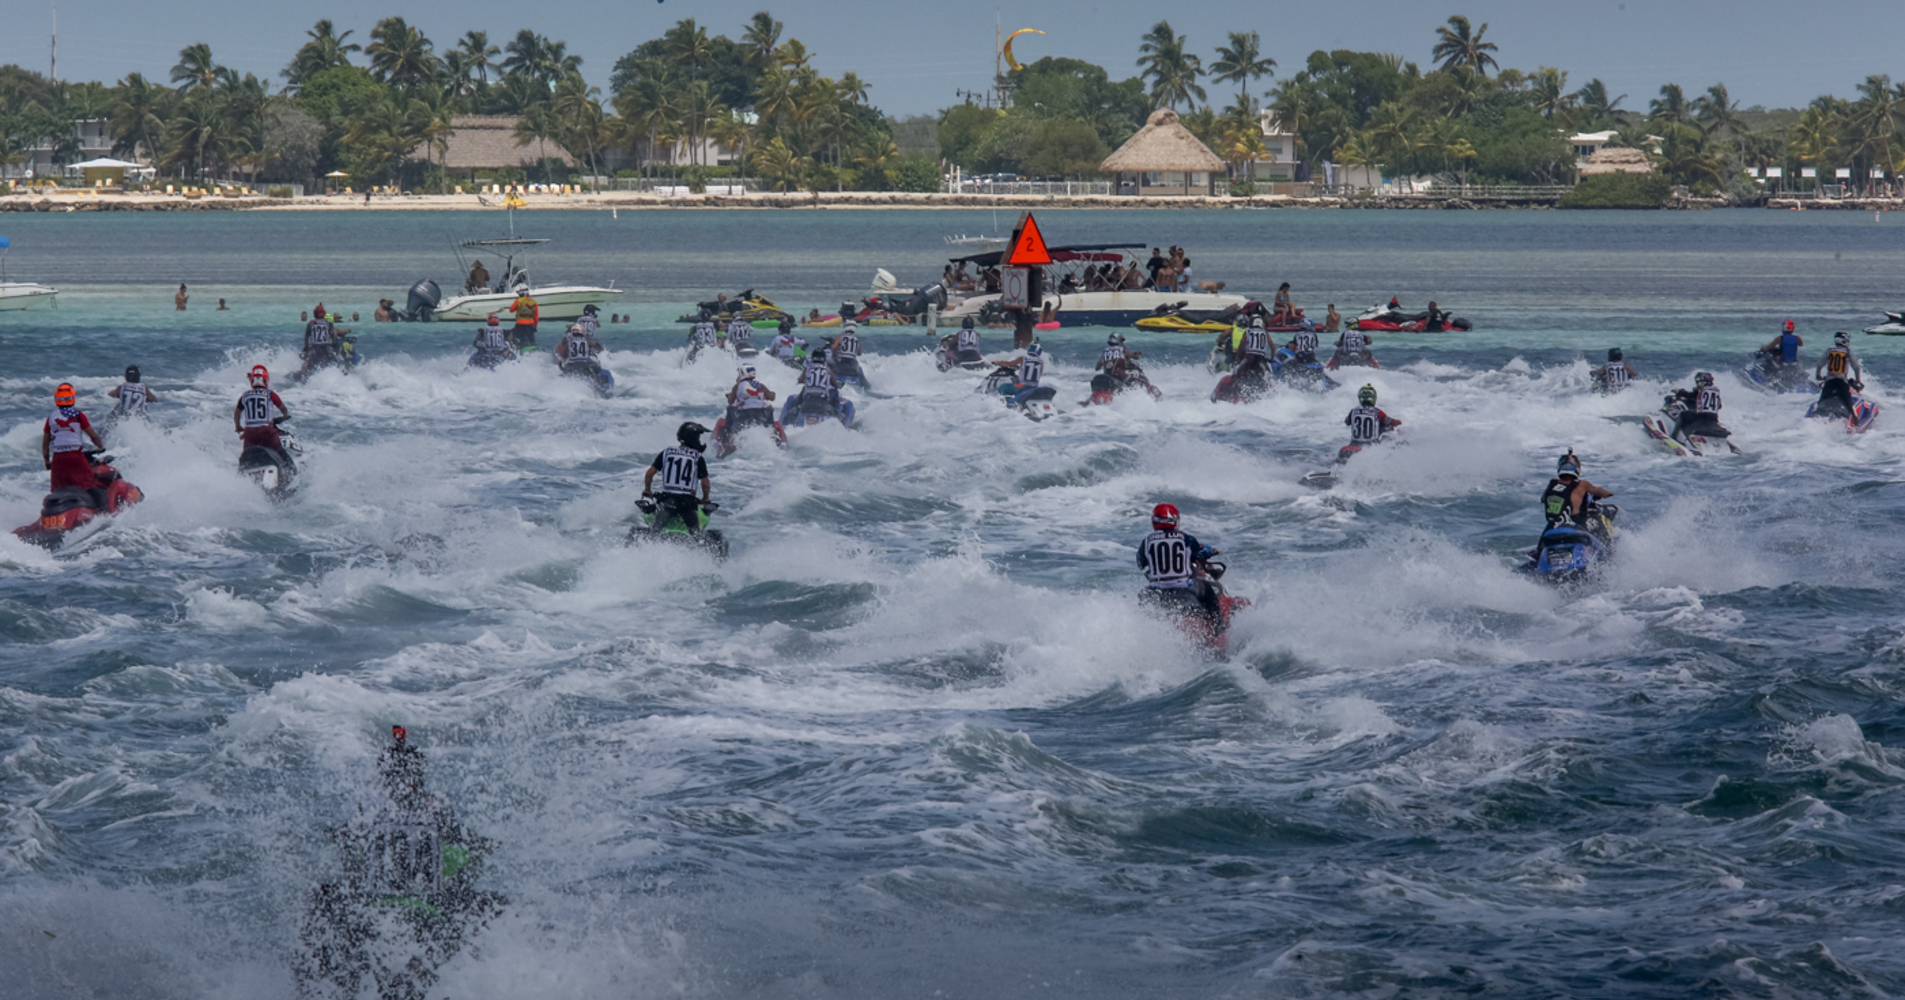 Over 50 racers will compete in key west this December